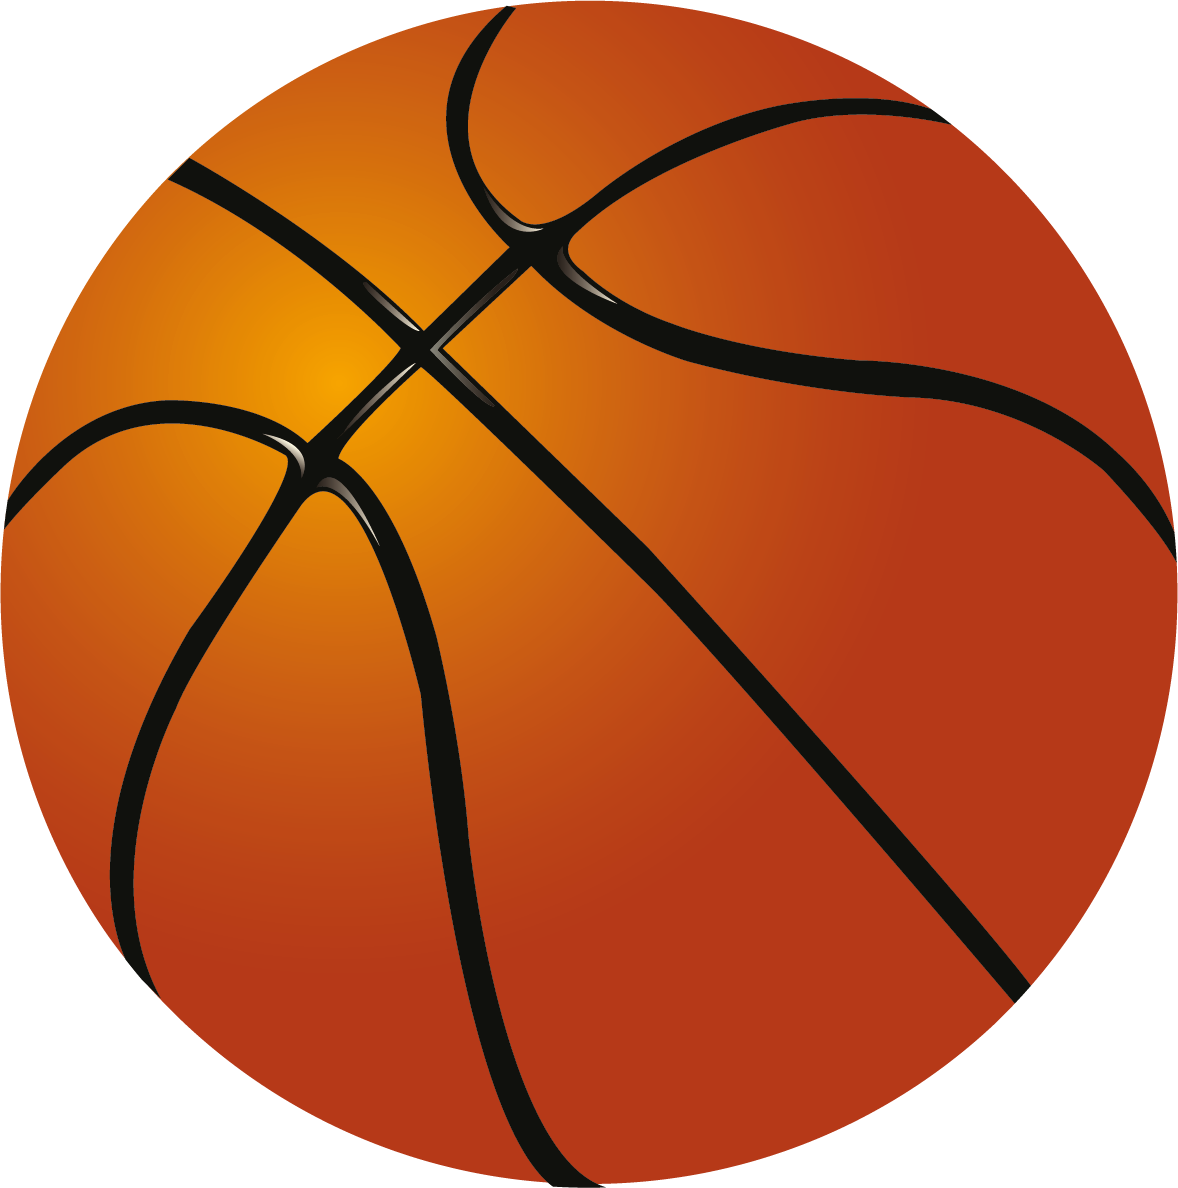 medium resolution of basketball clipart clipart panda free clipart images